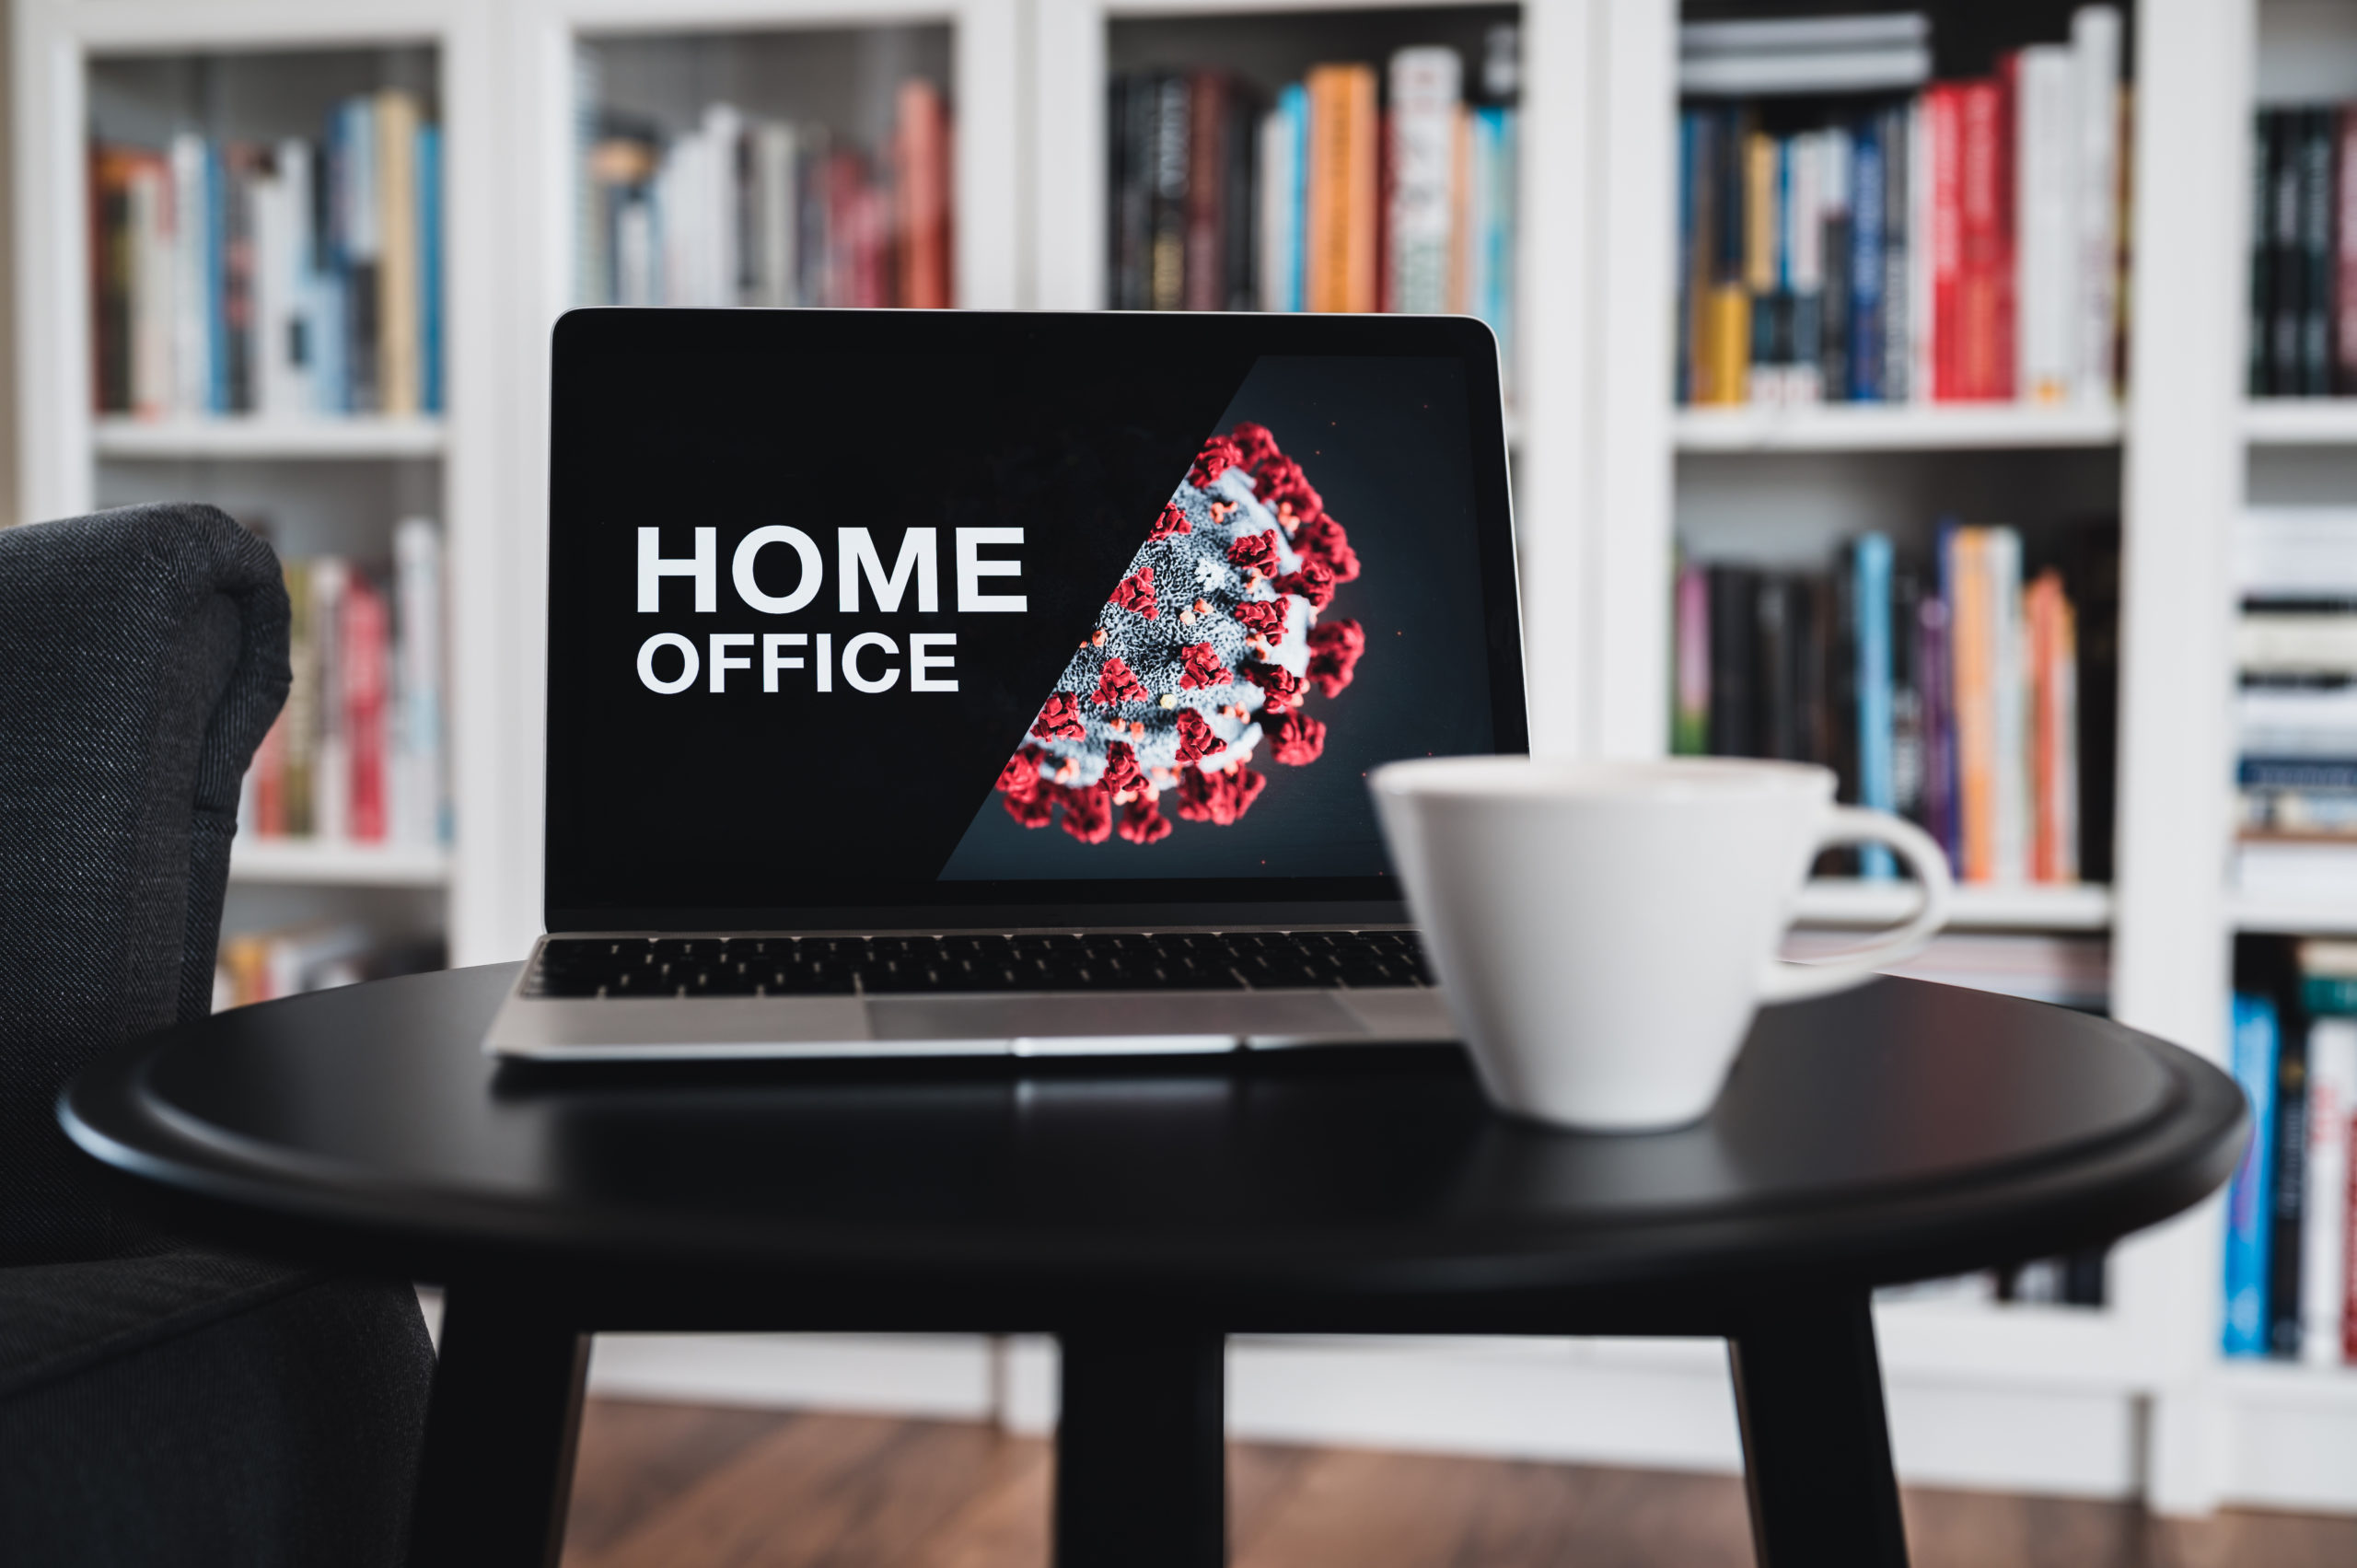 Technical Requirements For Working From Home